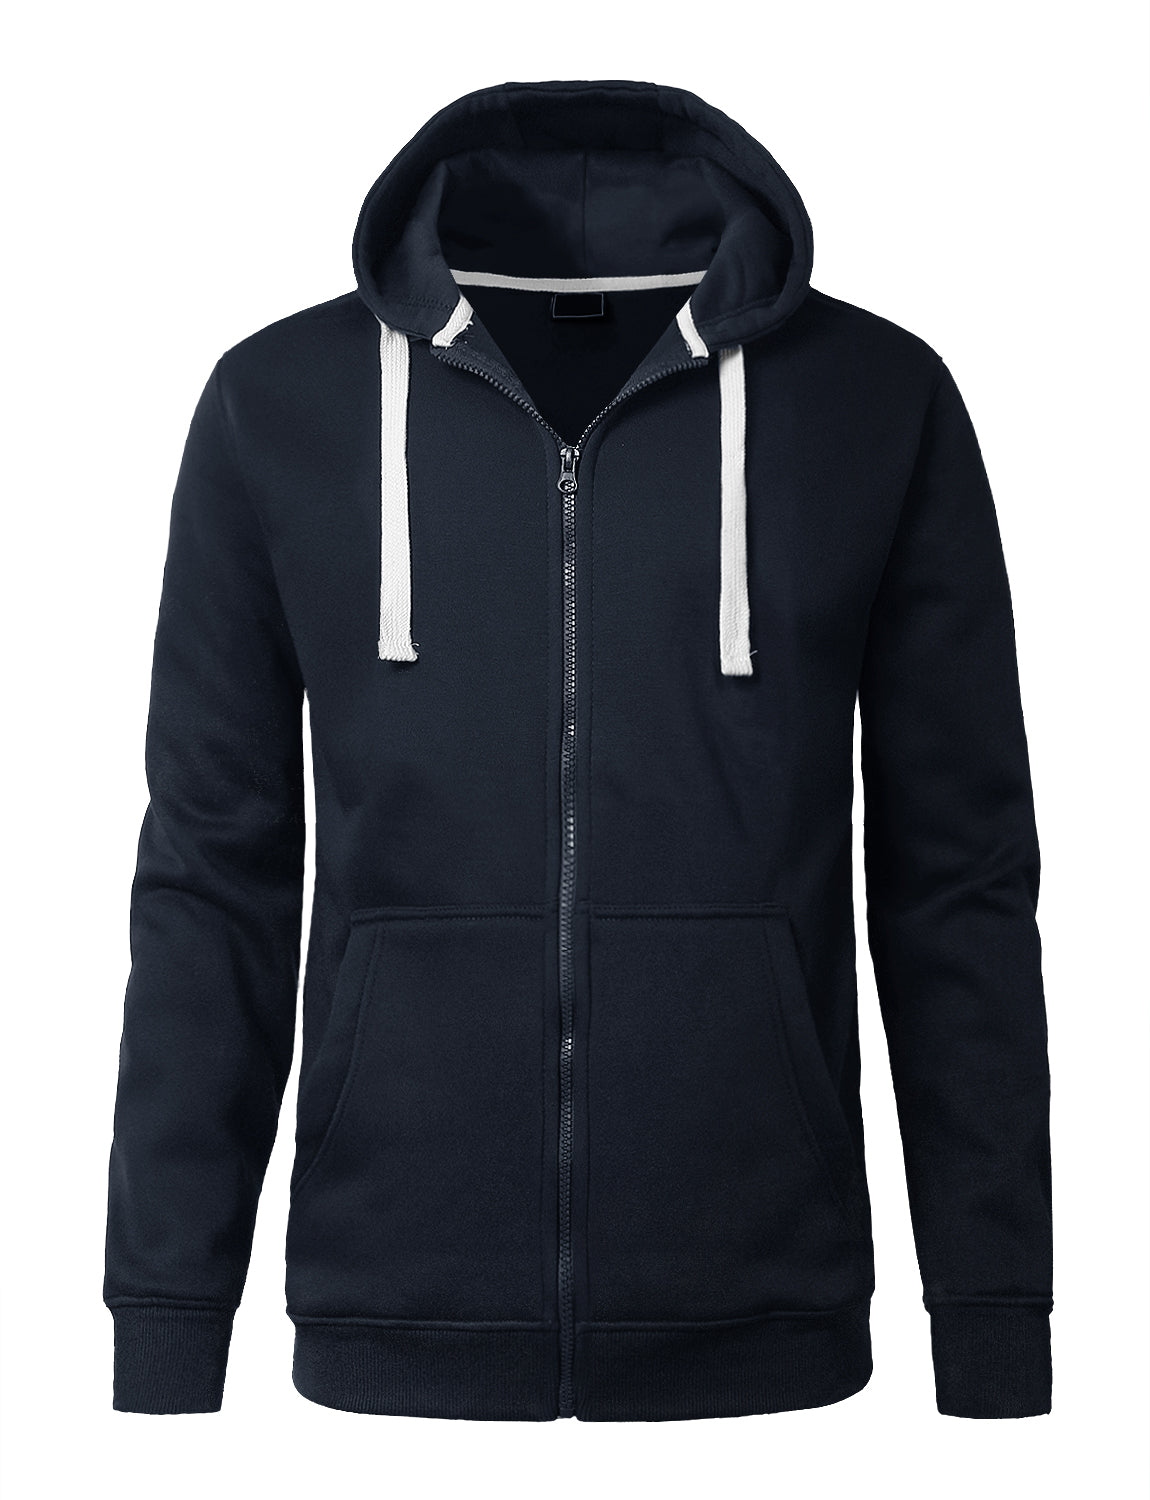 NAVY Lightweight Zip Up Fleece Hoodie - URBANCREWS